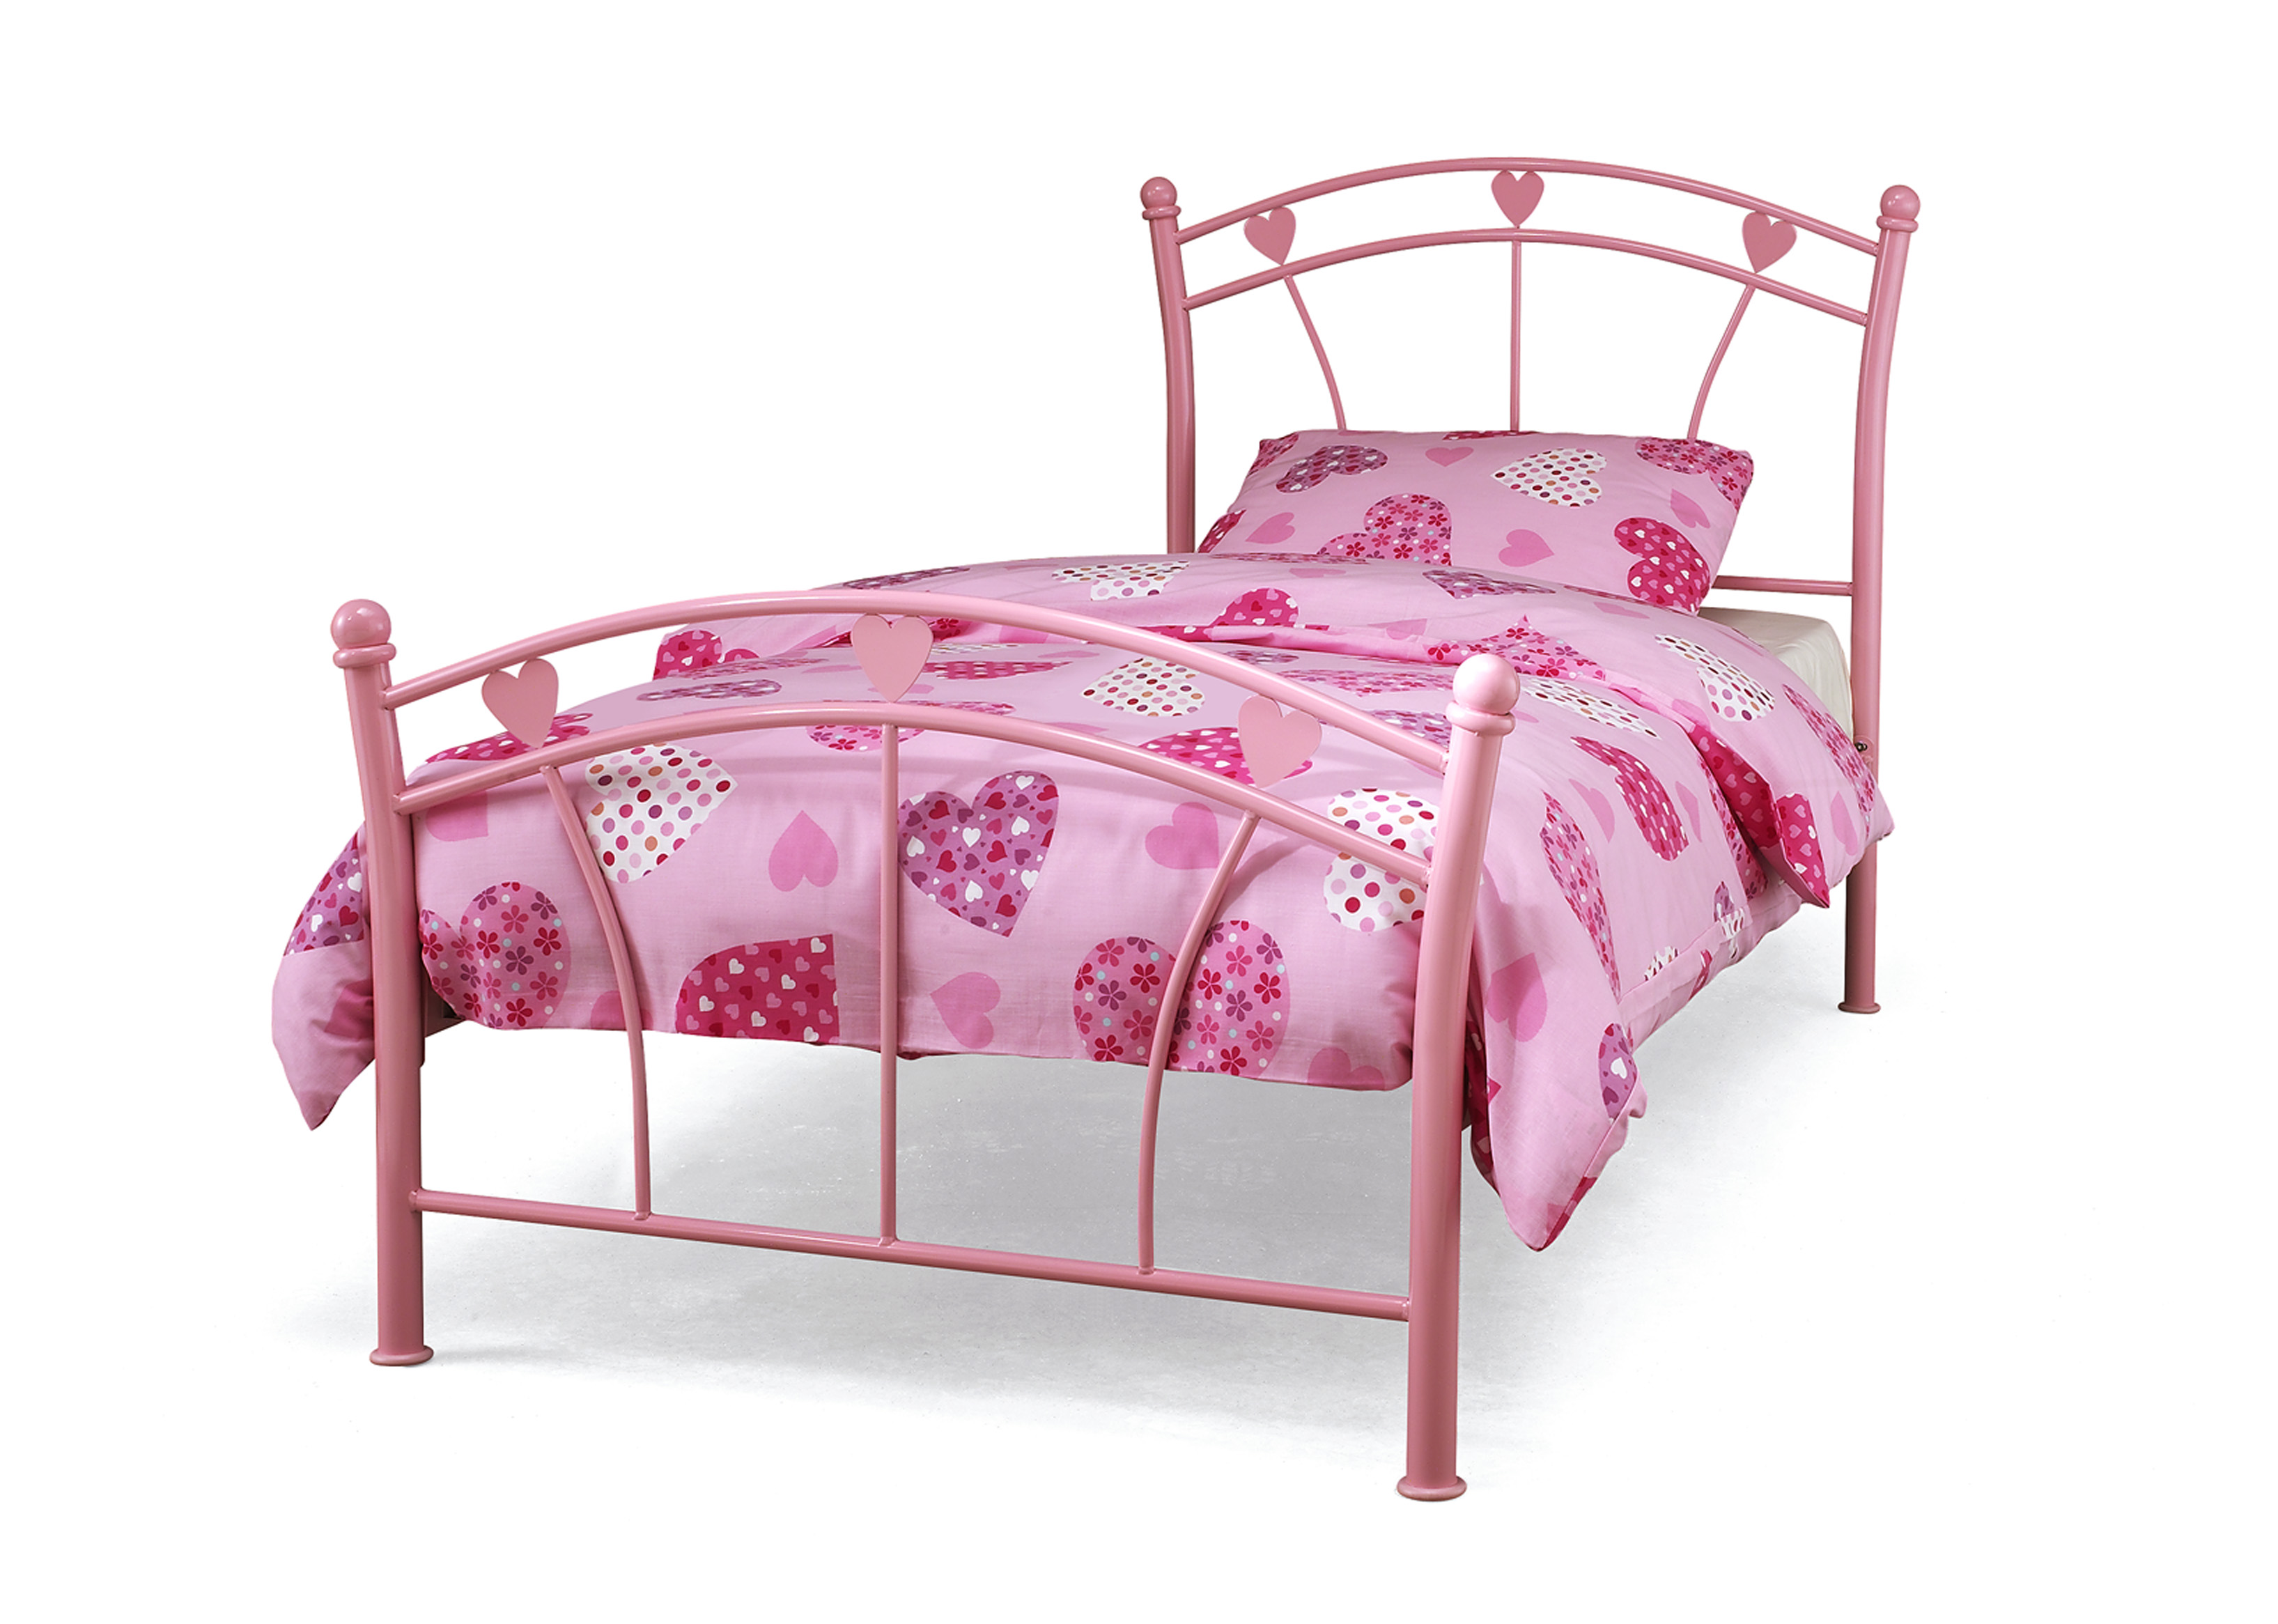 Jemima Pink Heart Frame and Mattress Option from £79